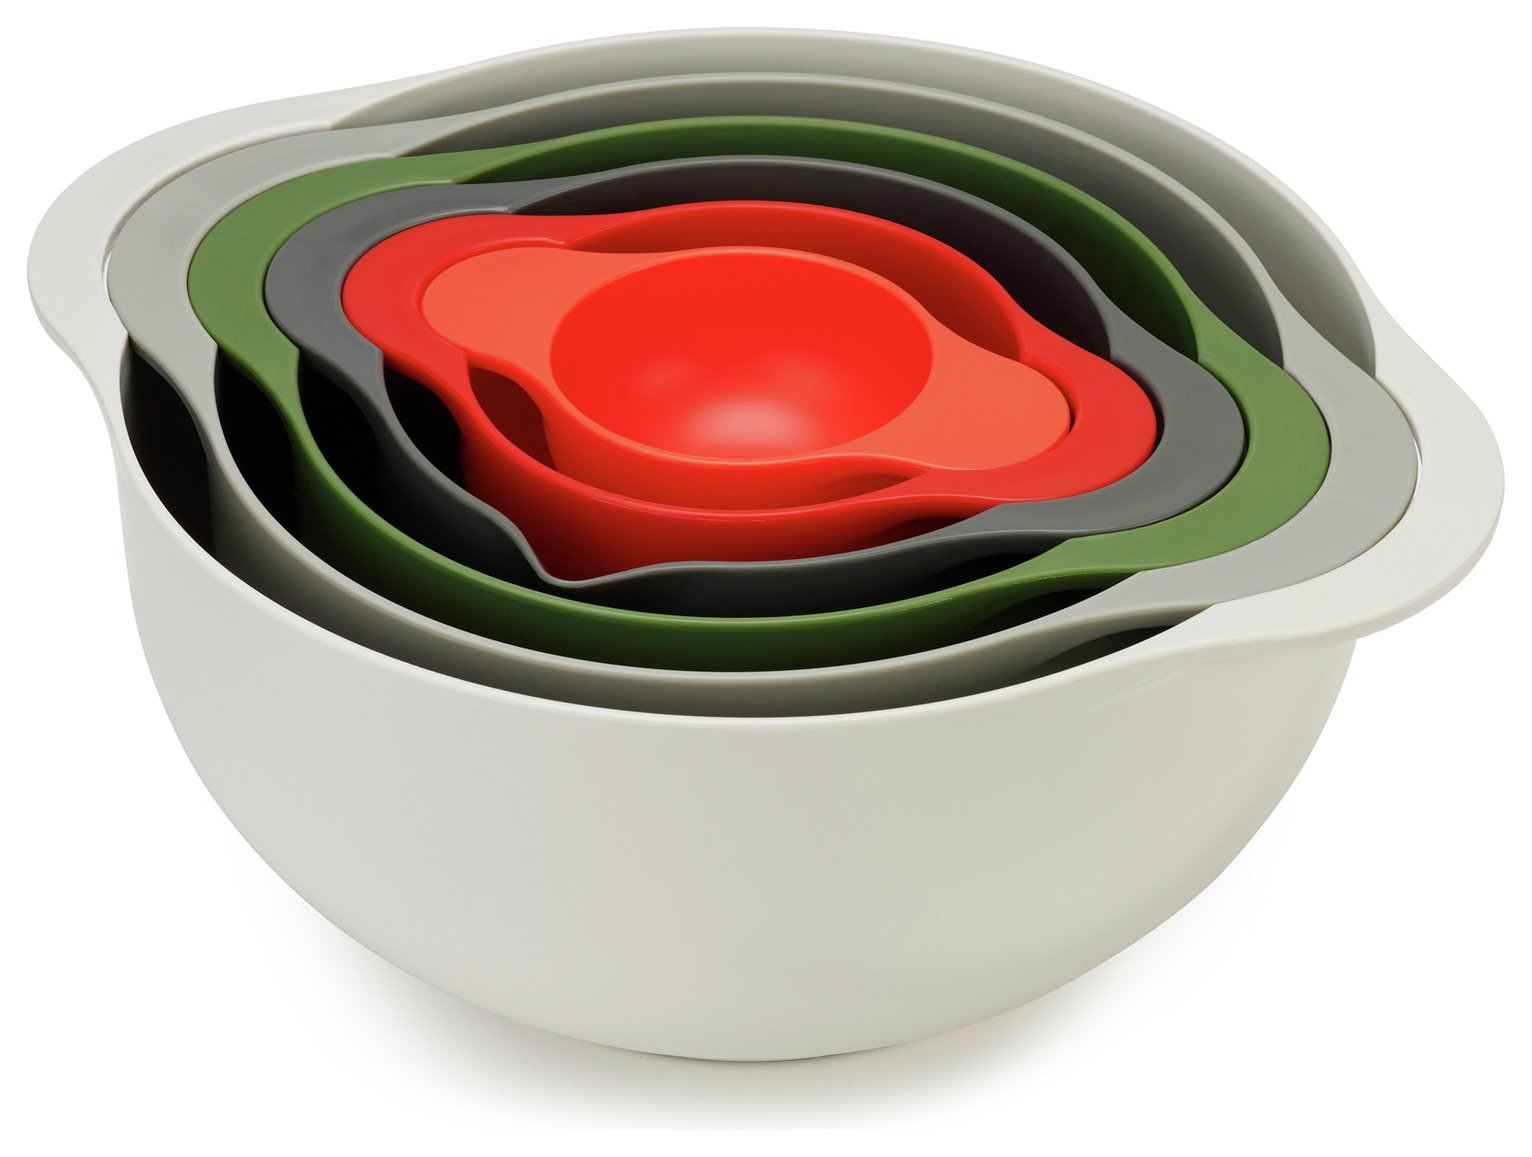 Image of Joseph Joseph Duo 6 Piece Bowl Set